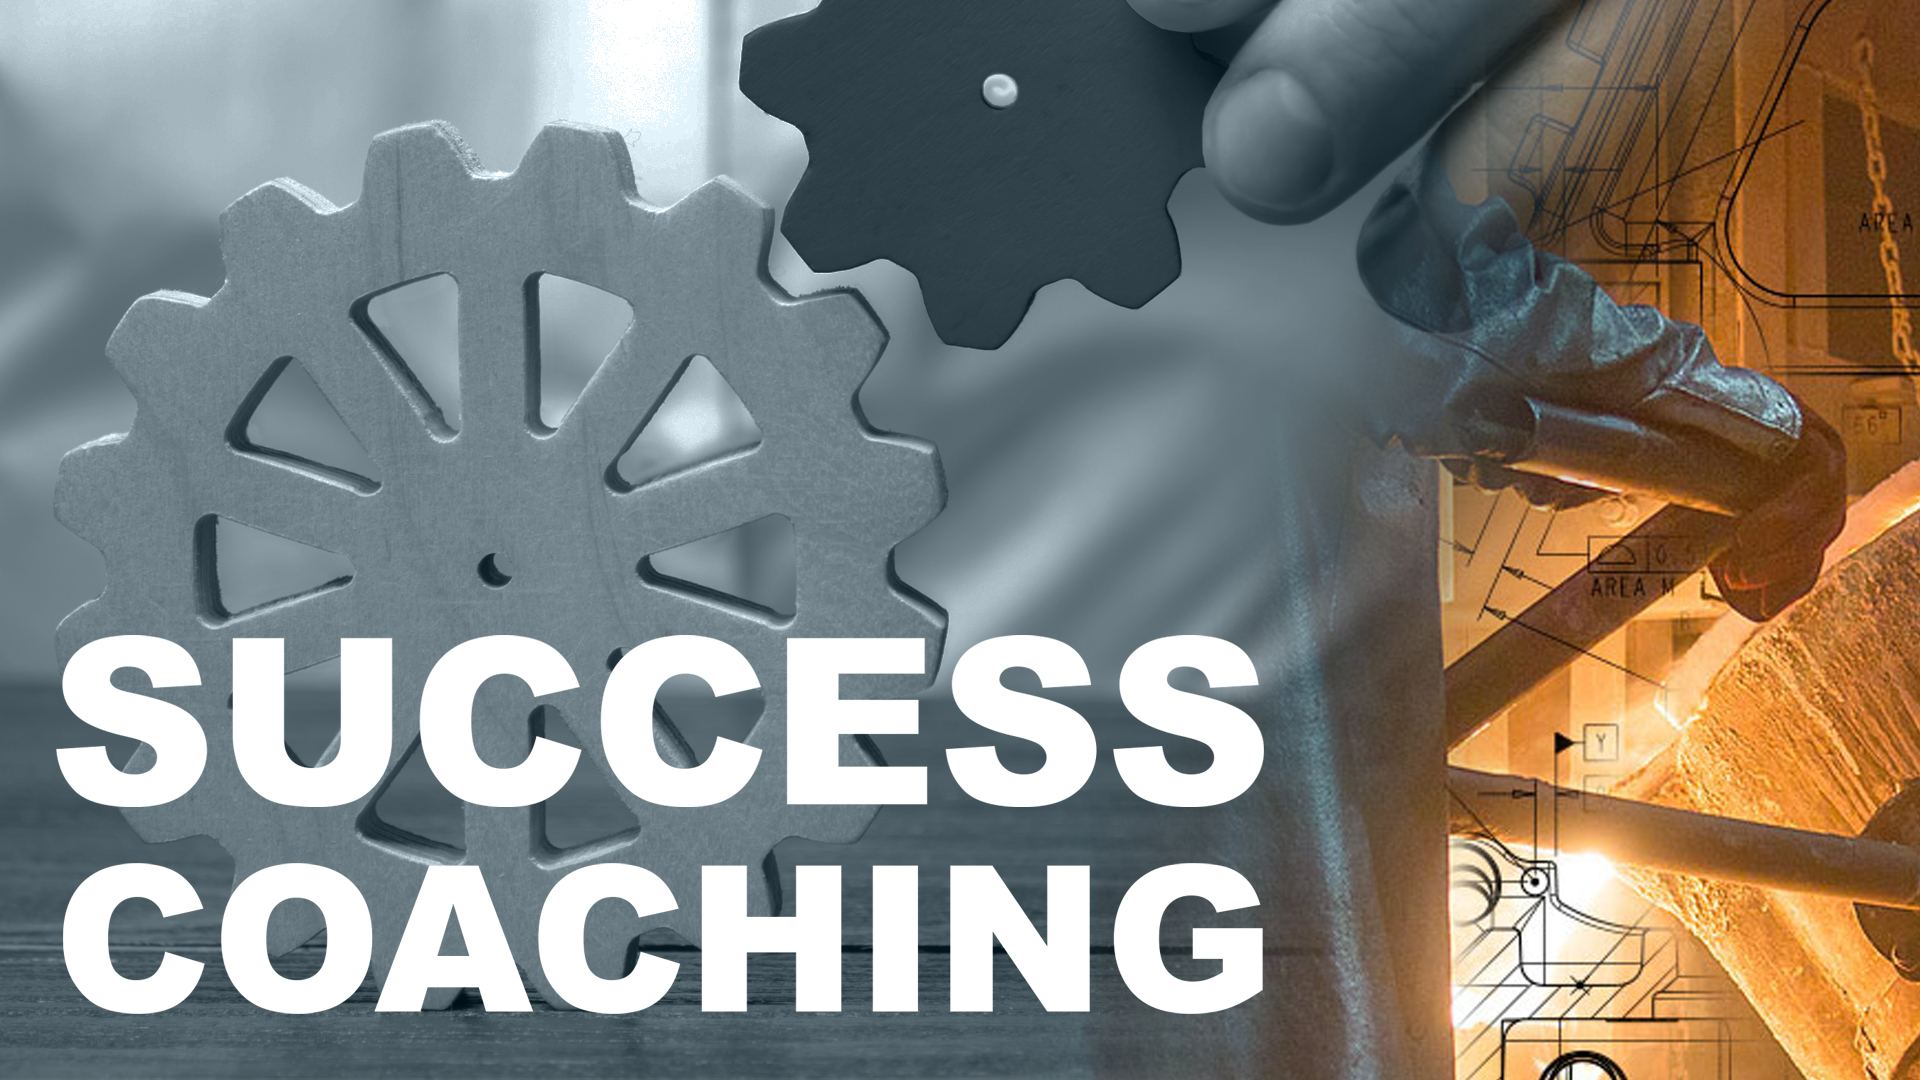 On-site Coaching Helps Eagle Employees Succeed